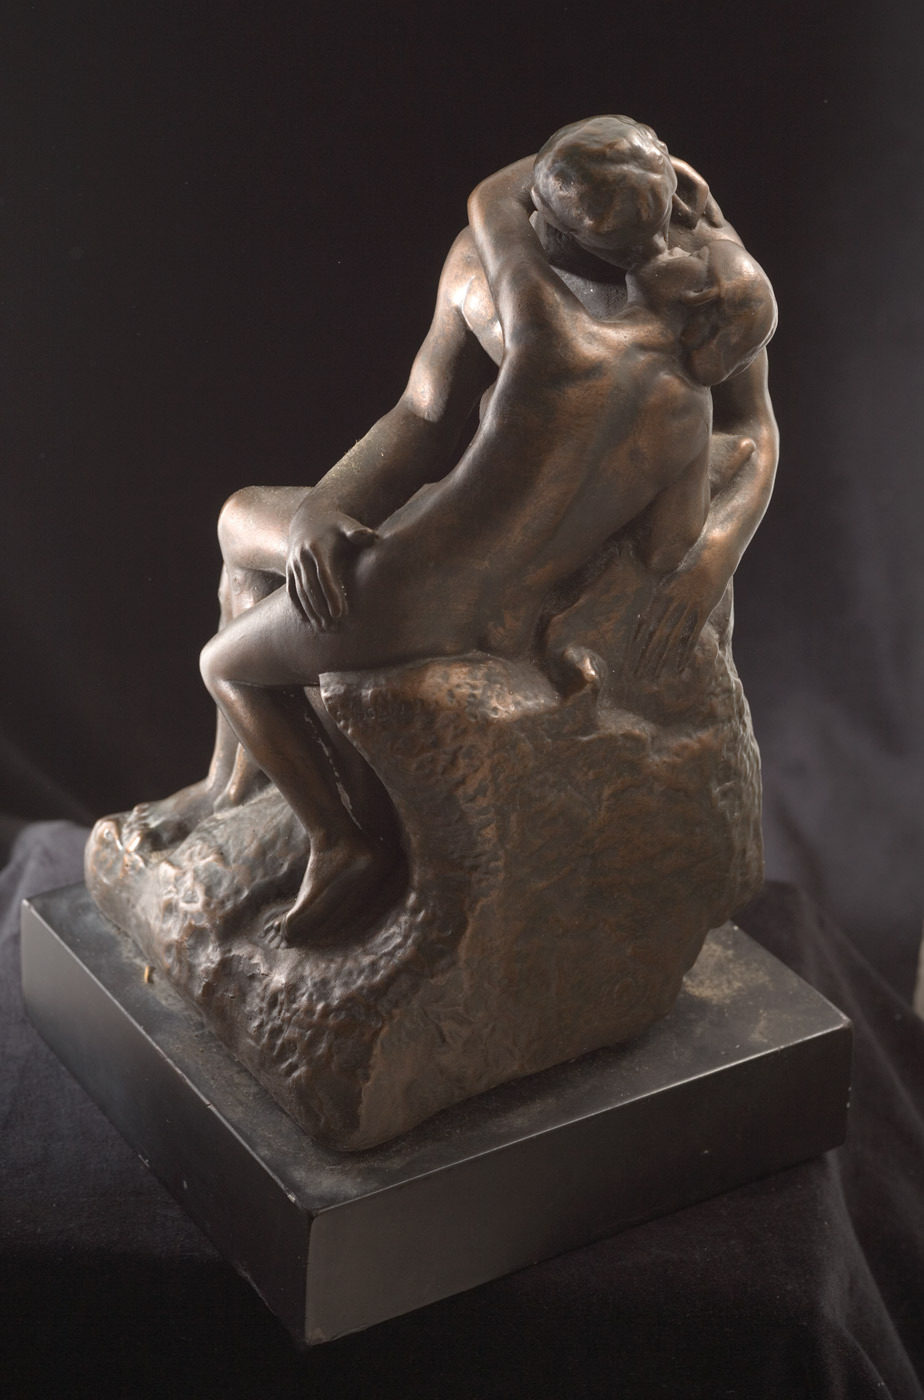 auguste rodin the kiss For sale on 1stdibs - the kiss, bronze by auguste rodin, 1840-1917 offered by alpha gallery.